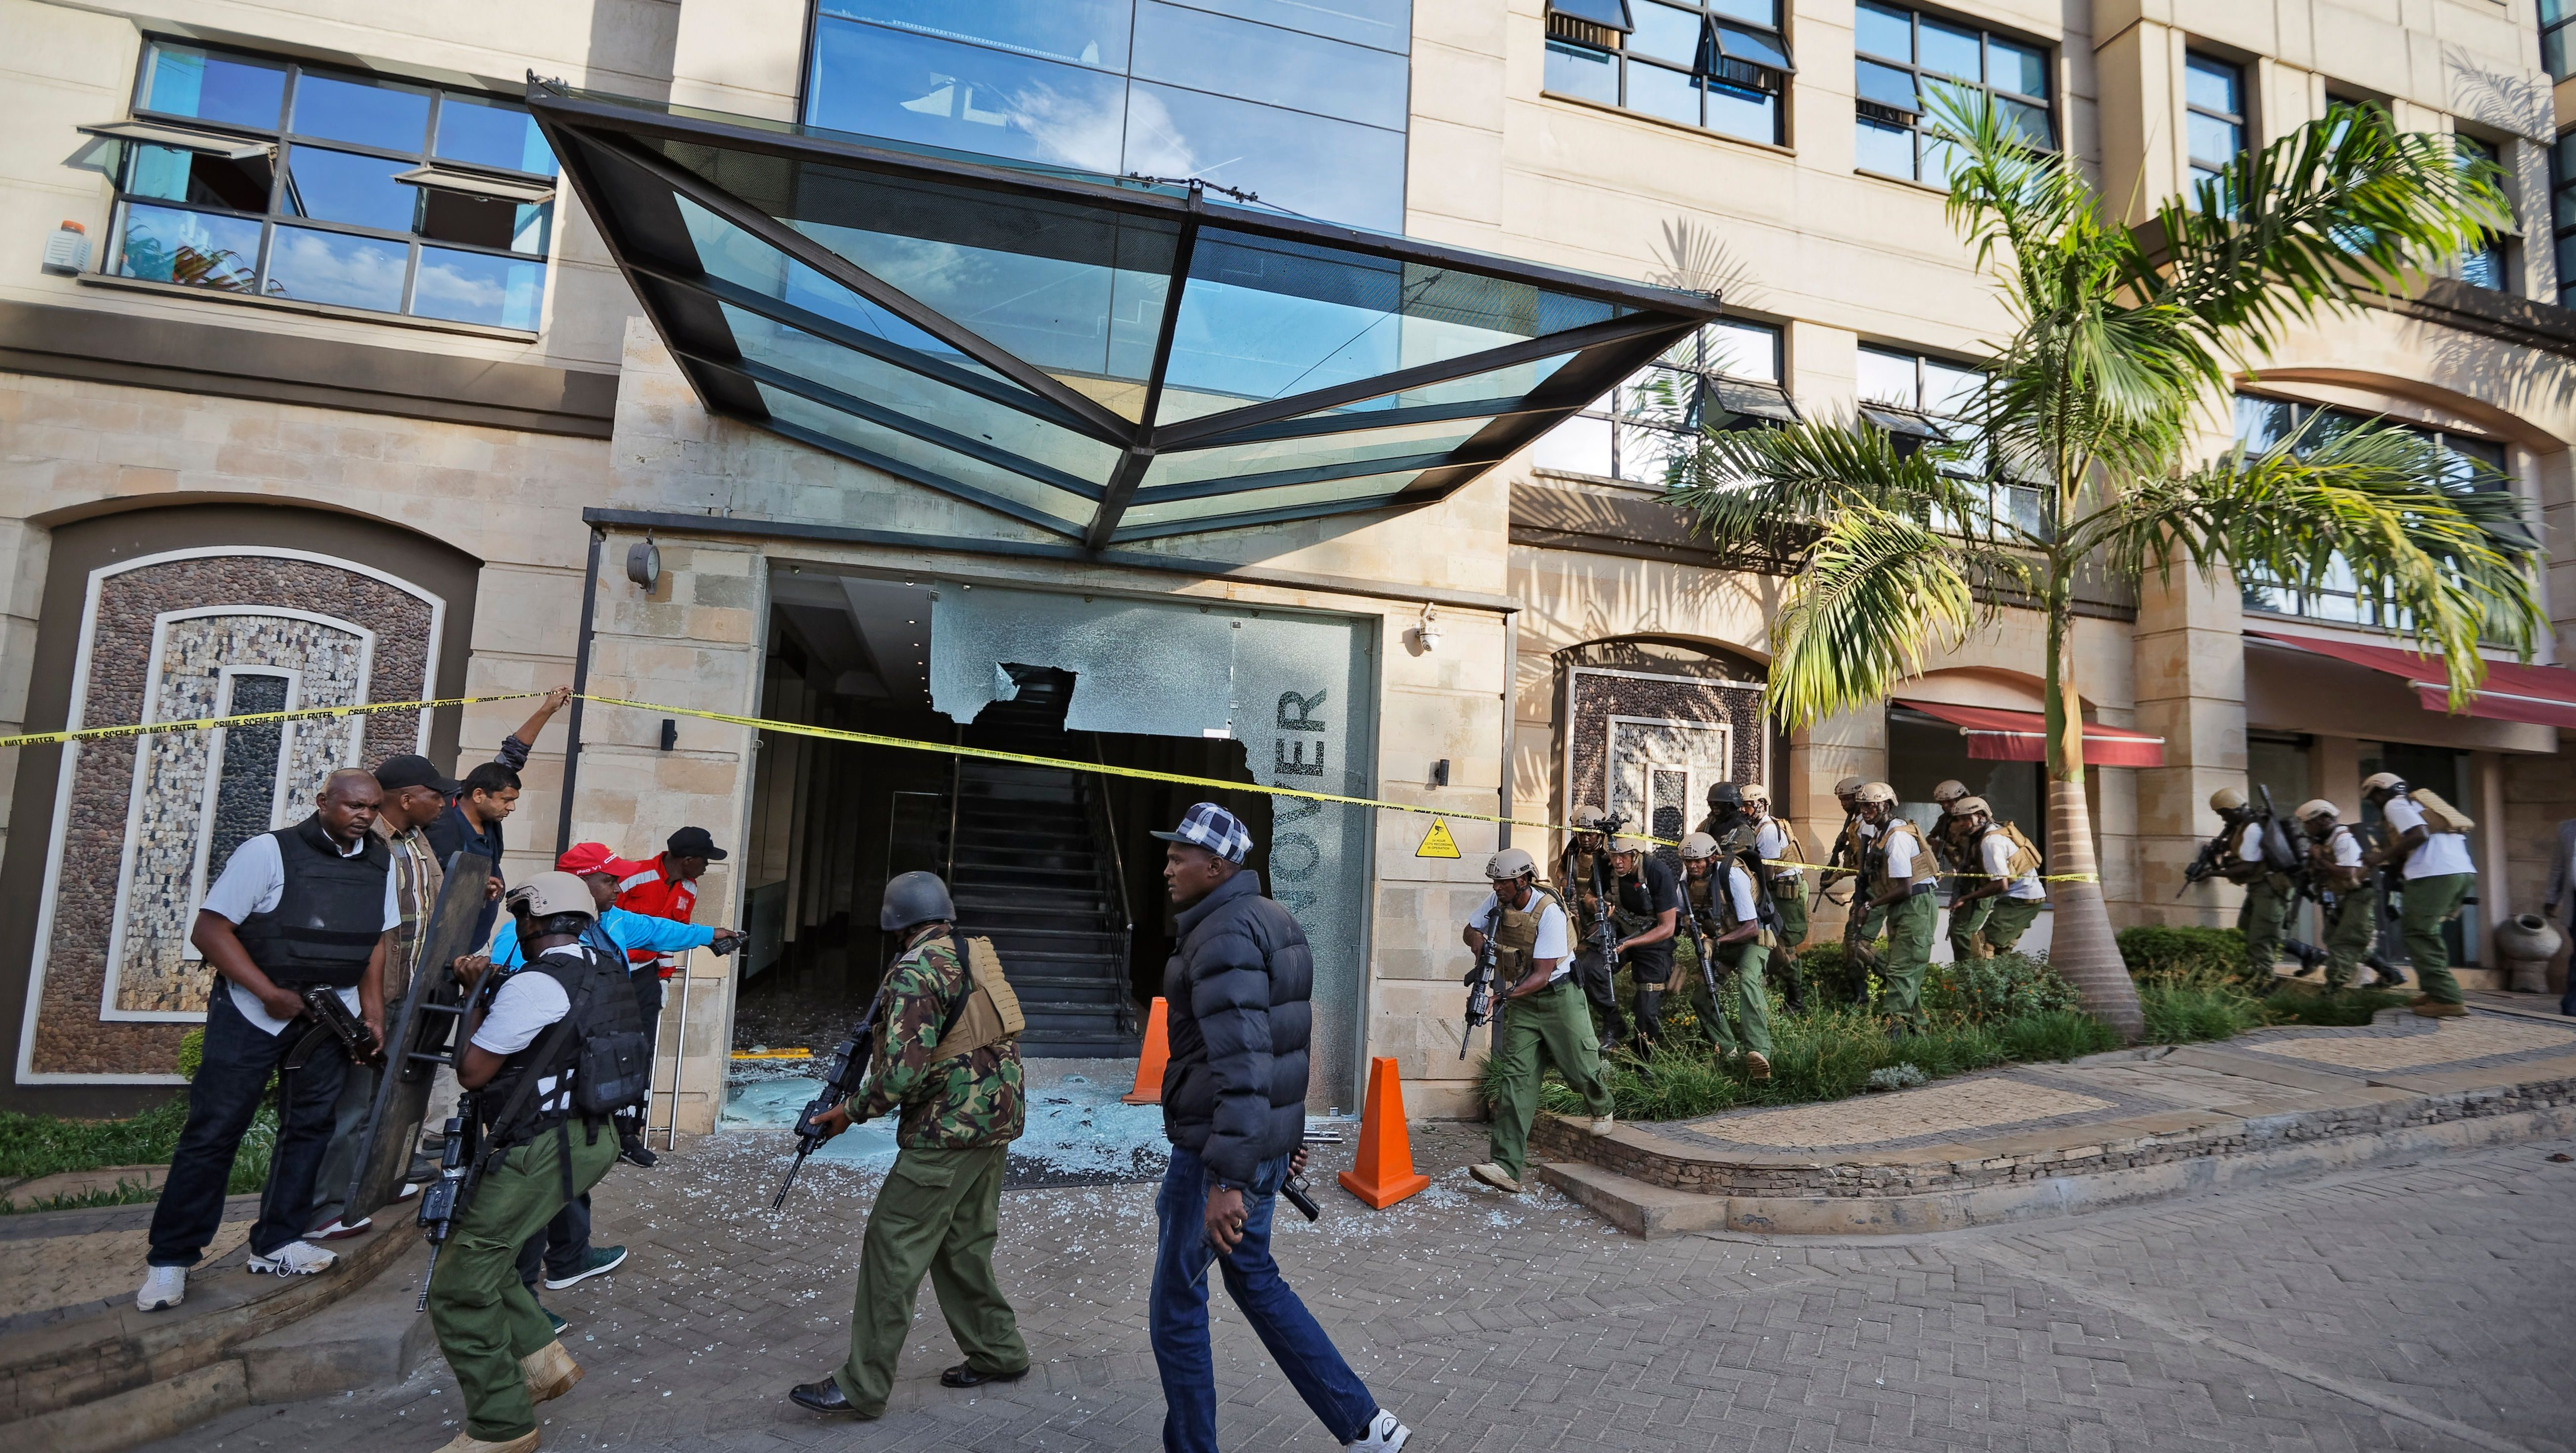 Security forces surround a hallway behind a shattered door in which an unexploded grenade lies, at a hotel complex in Nairobi, Kenya Tuesday, Jan. 15, 2019. Terrorists attacked an upscale hotel complex in Kenya's capital Tuesday, sending people fleeing in panic as explosions and heavy gunfire reverberated through the neighborhood.